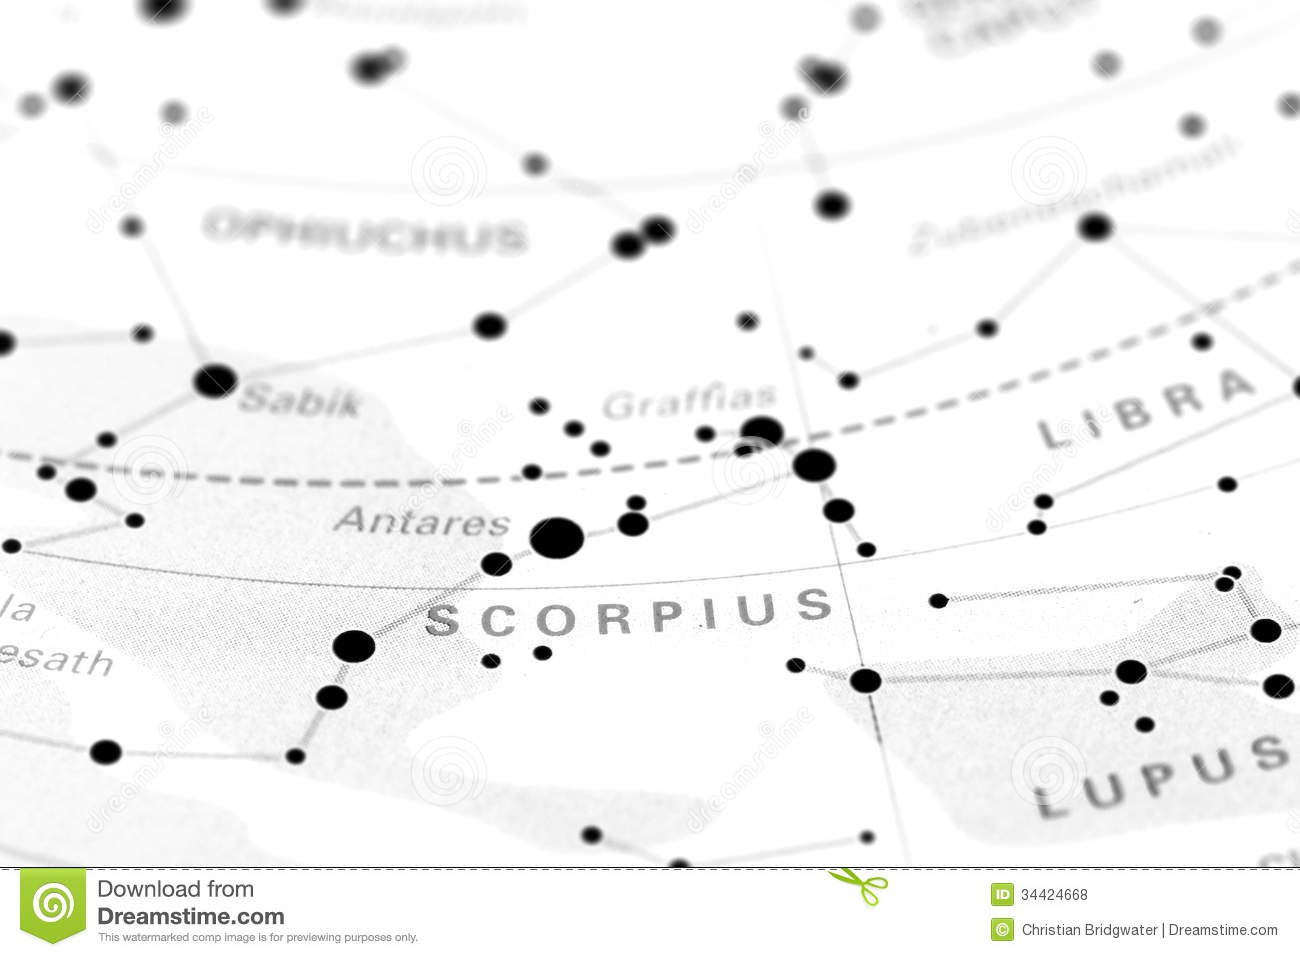 Scorpio on star map